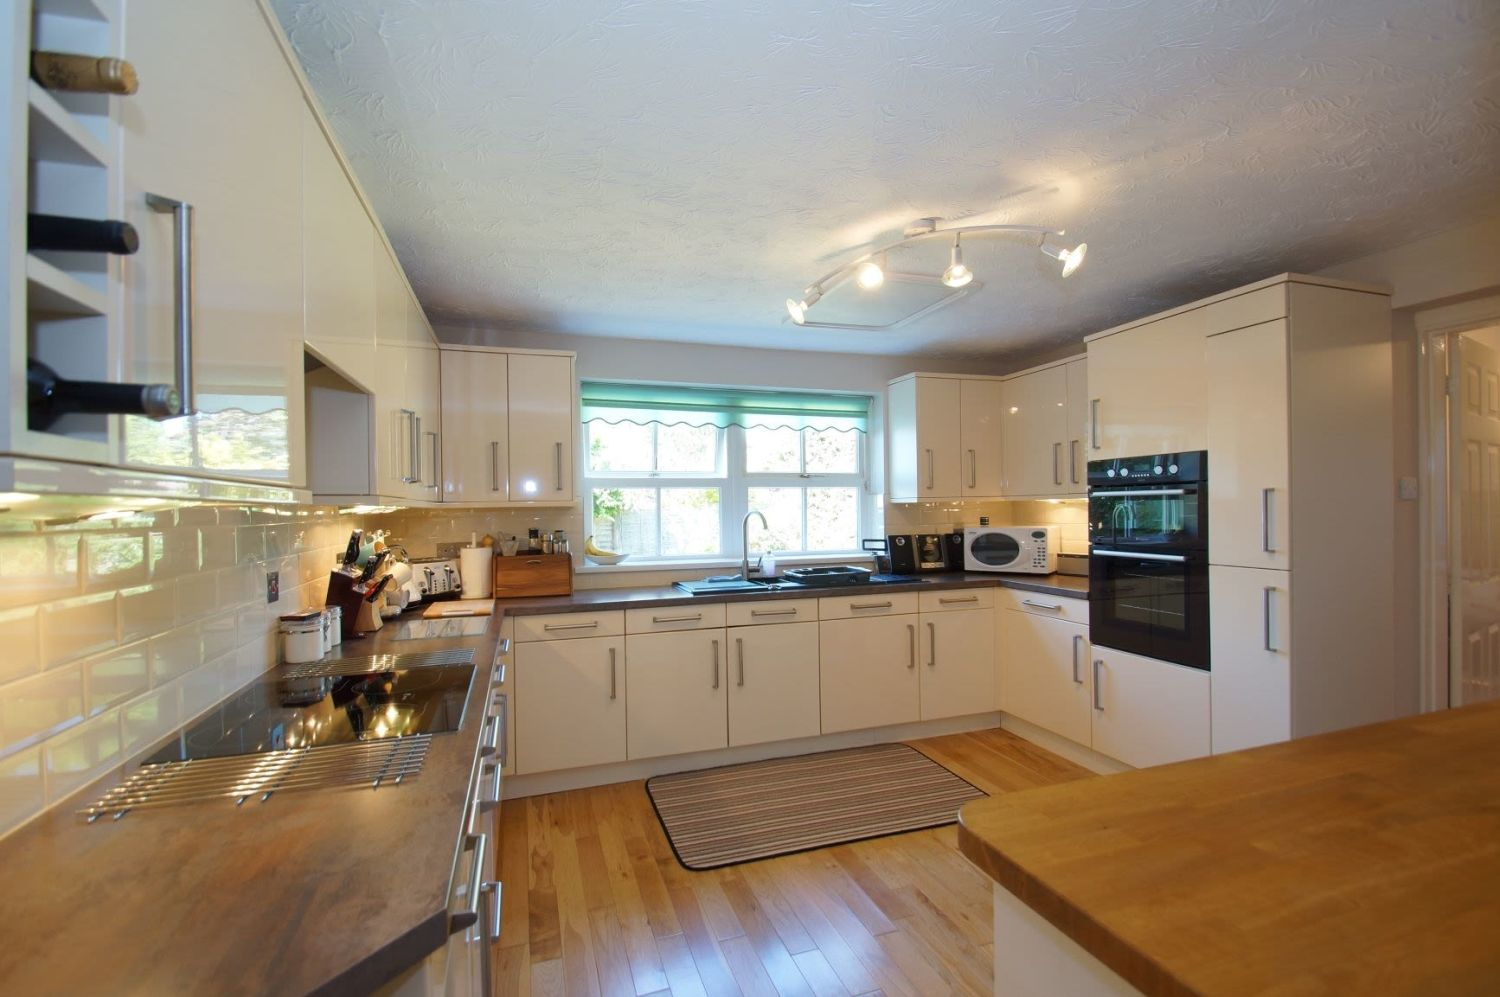 4 bed detached for sale in Acre Lane, Webheath  - Property Image 7